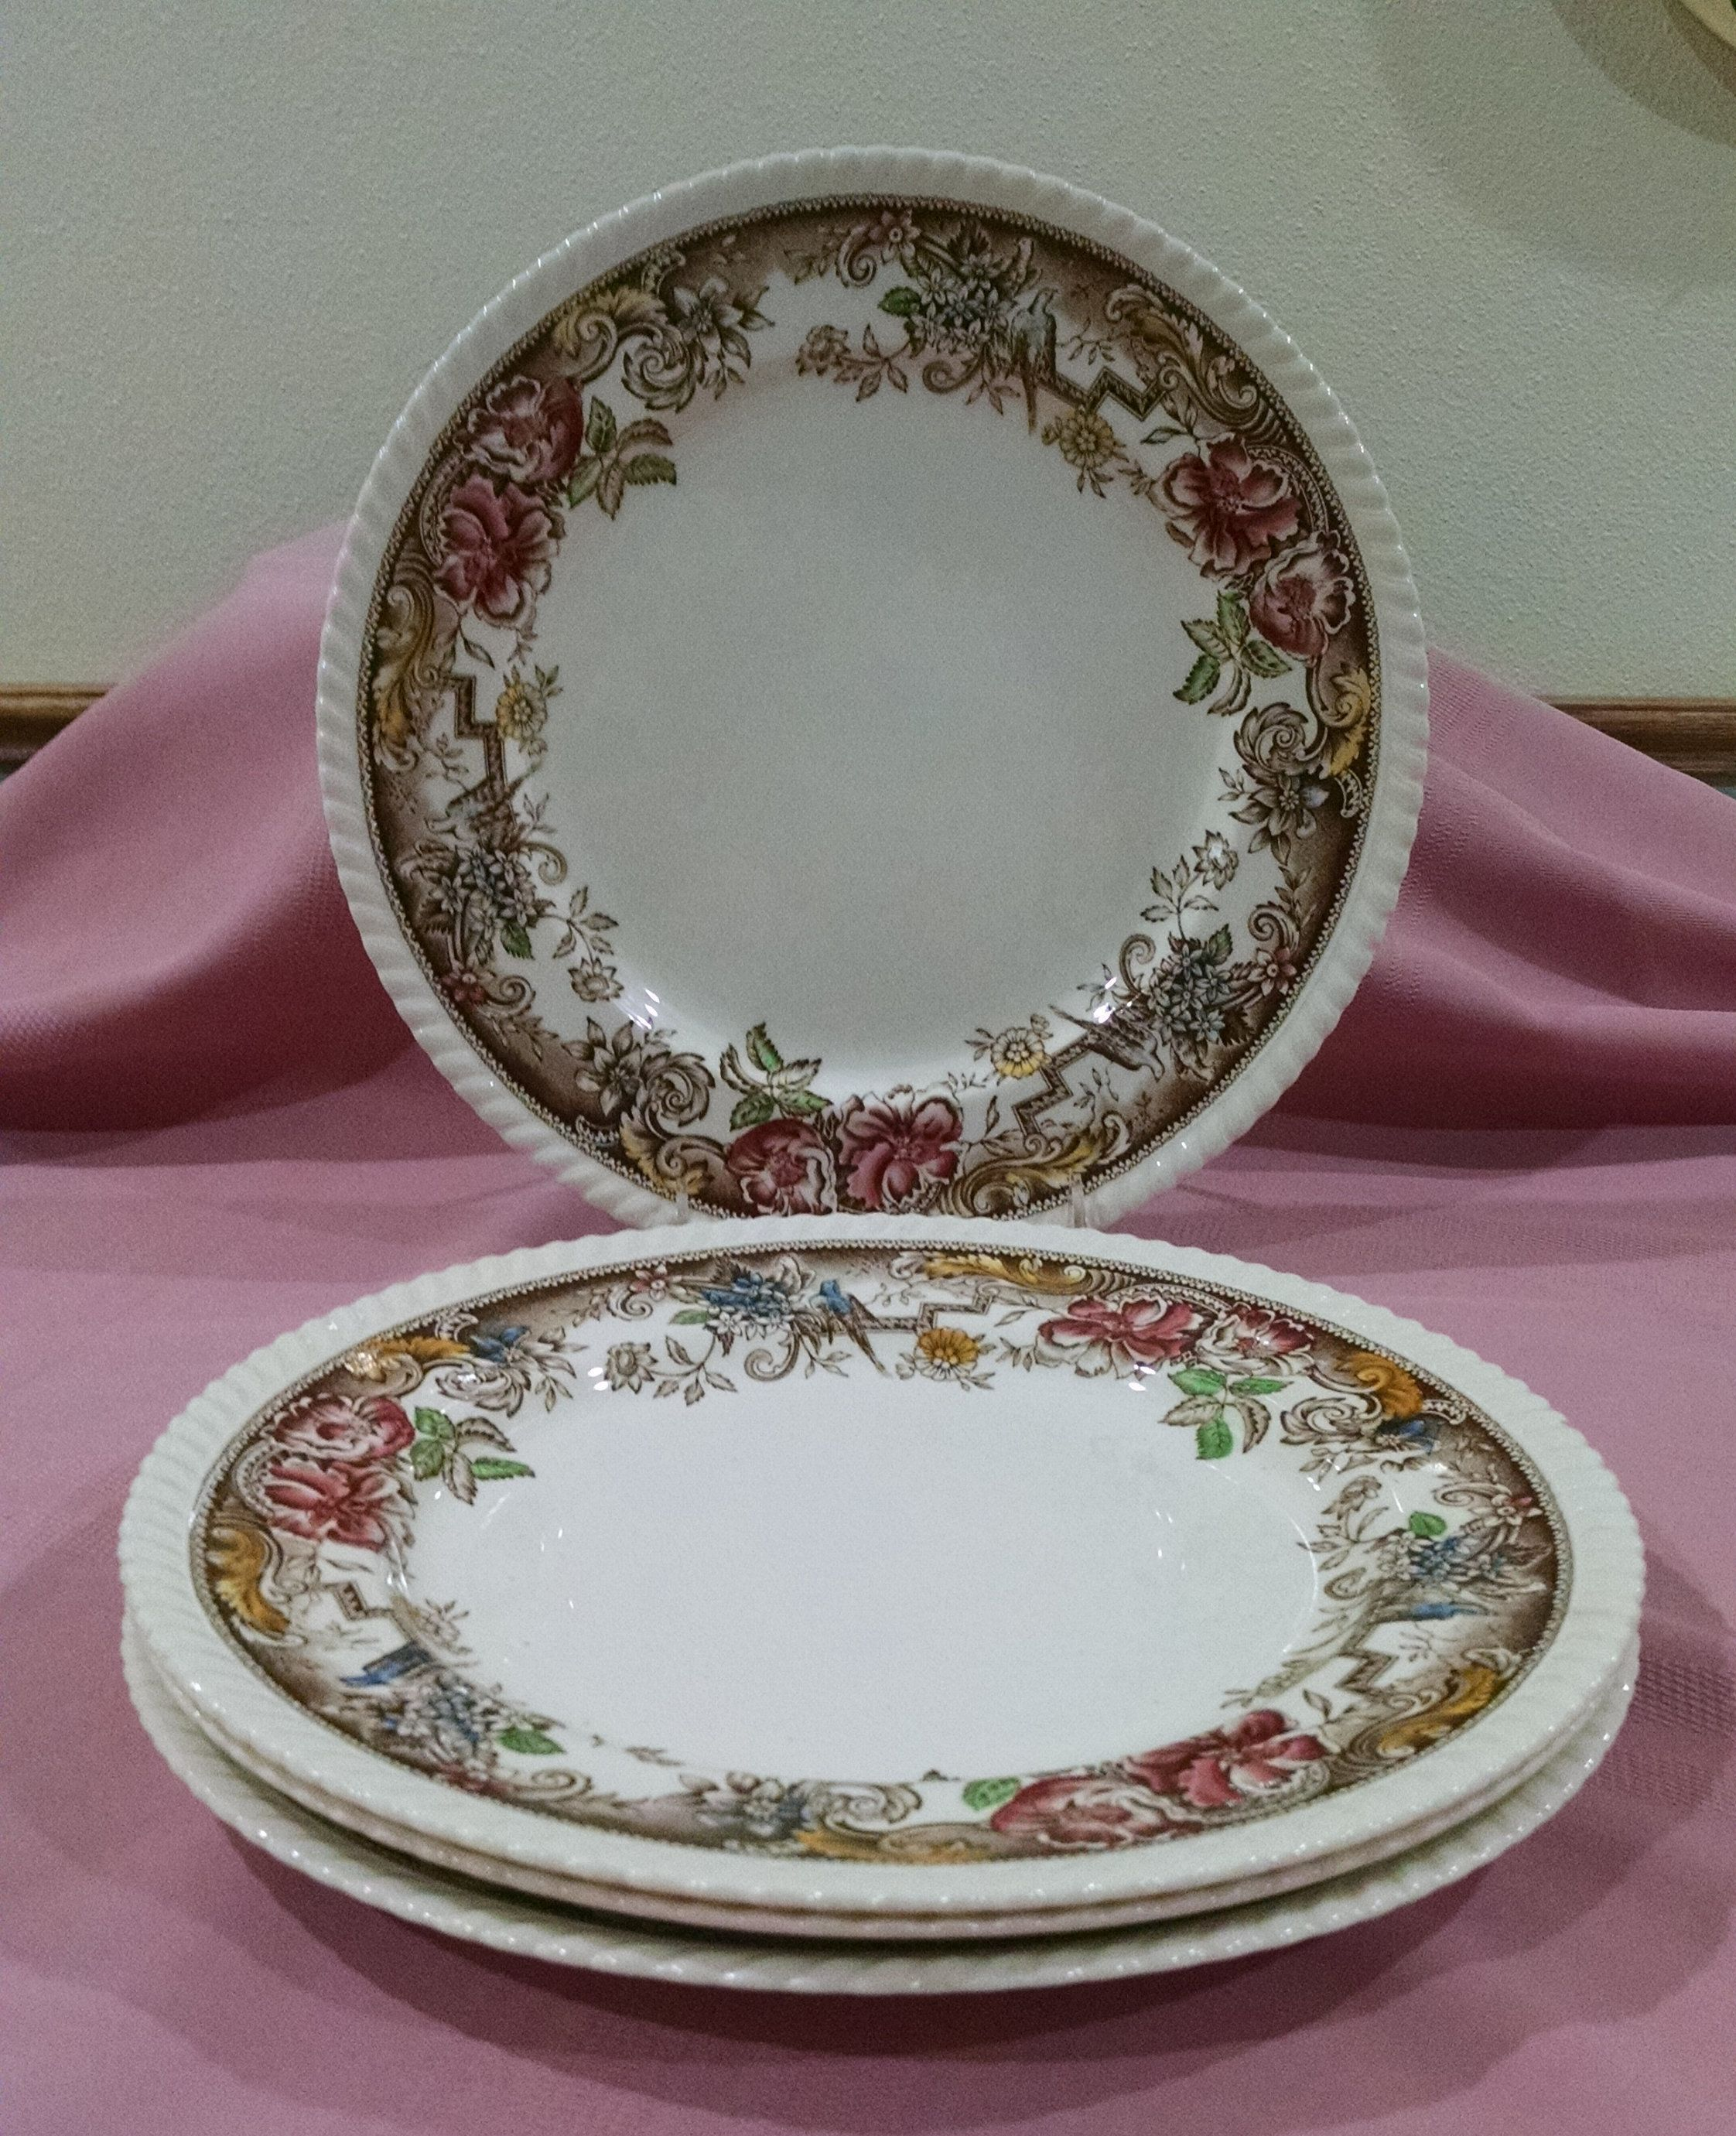 Devonshire 10 Inch Dinner Plates Johnson Bros England Set Of 4 Brown And Ivory With Multicolored Flowers And Birds Vintage Dinnerware Plates Vintage Plates